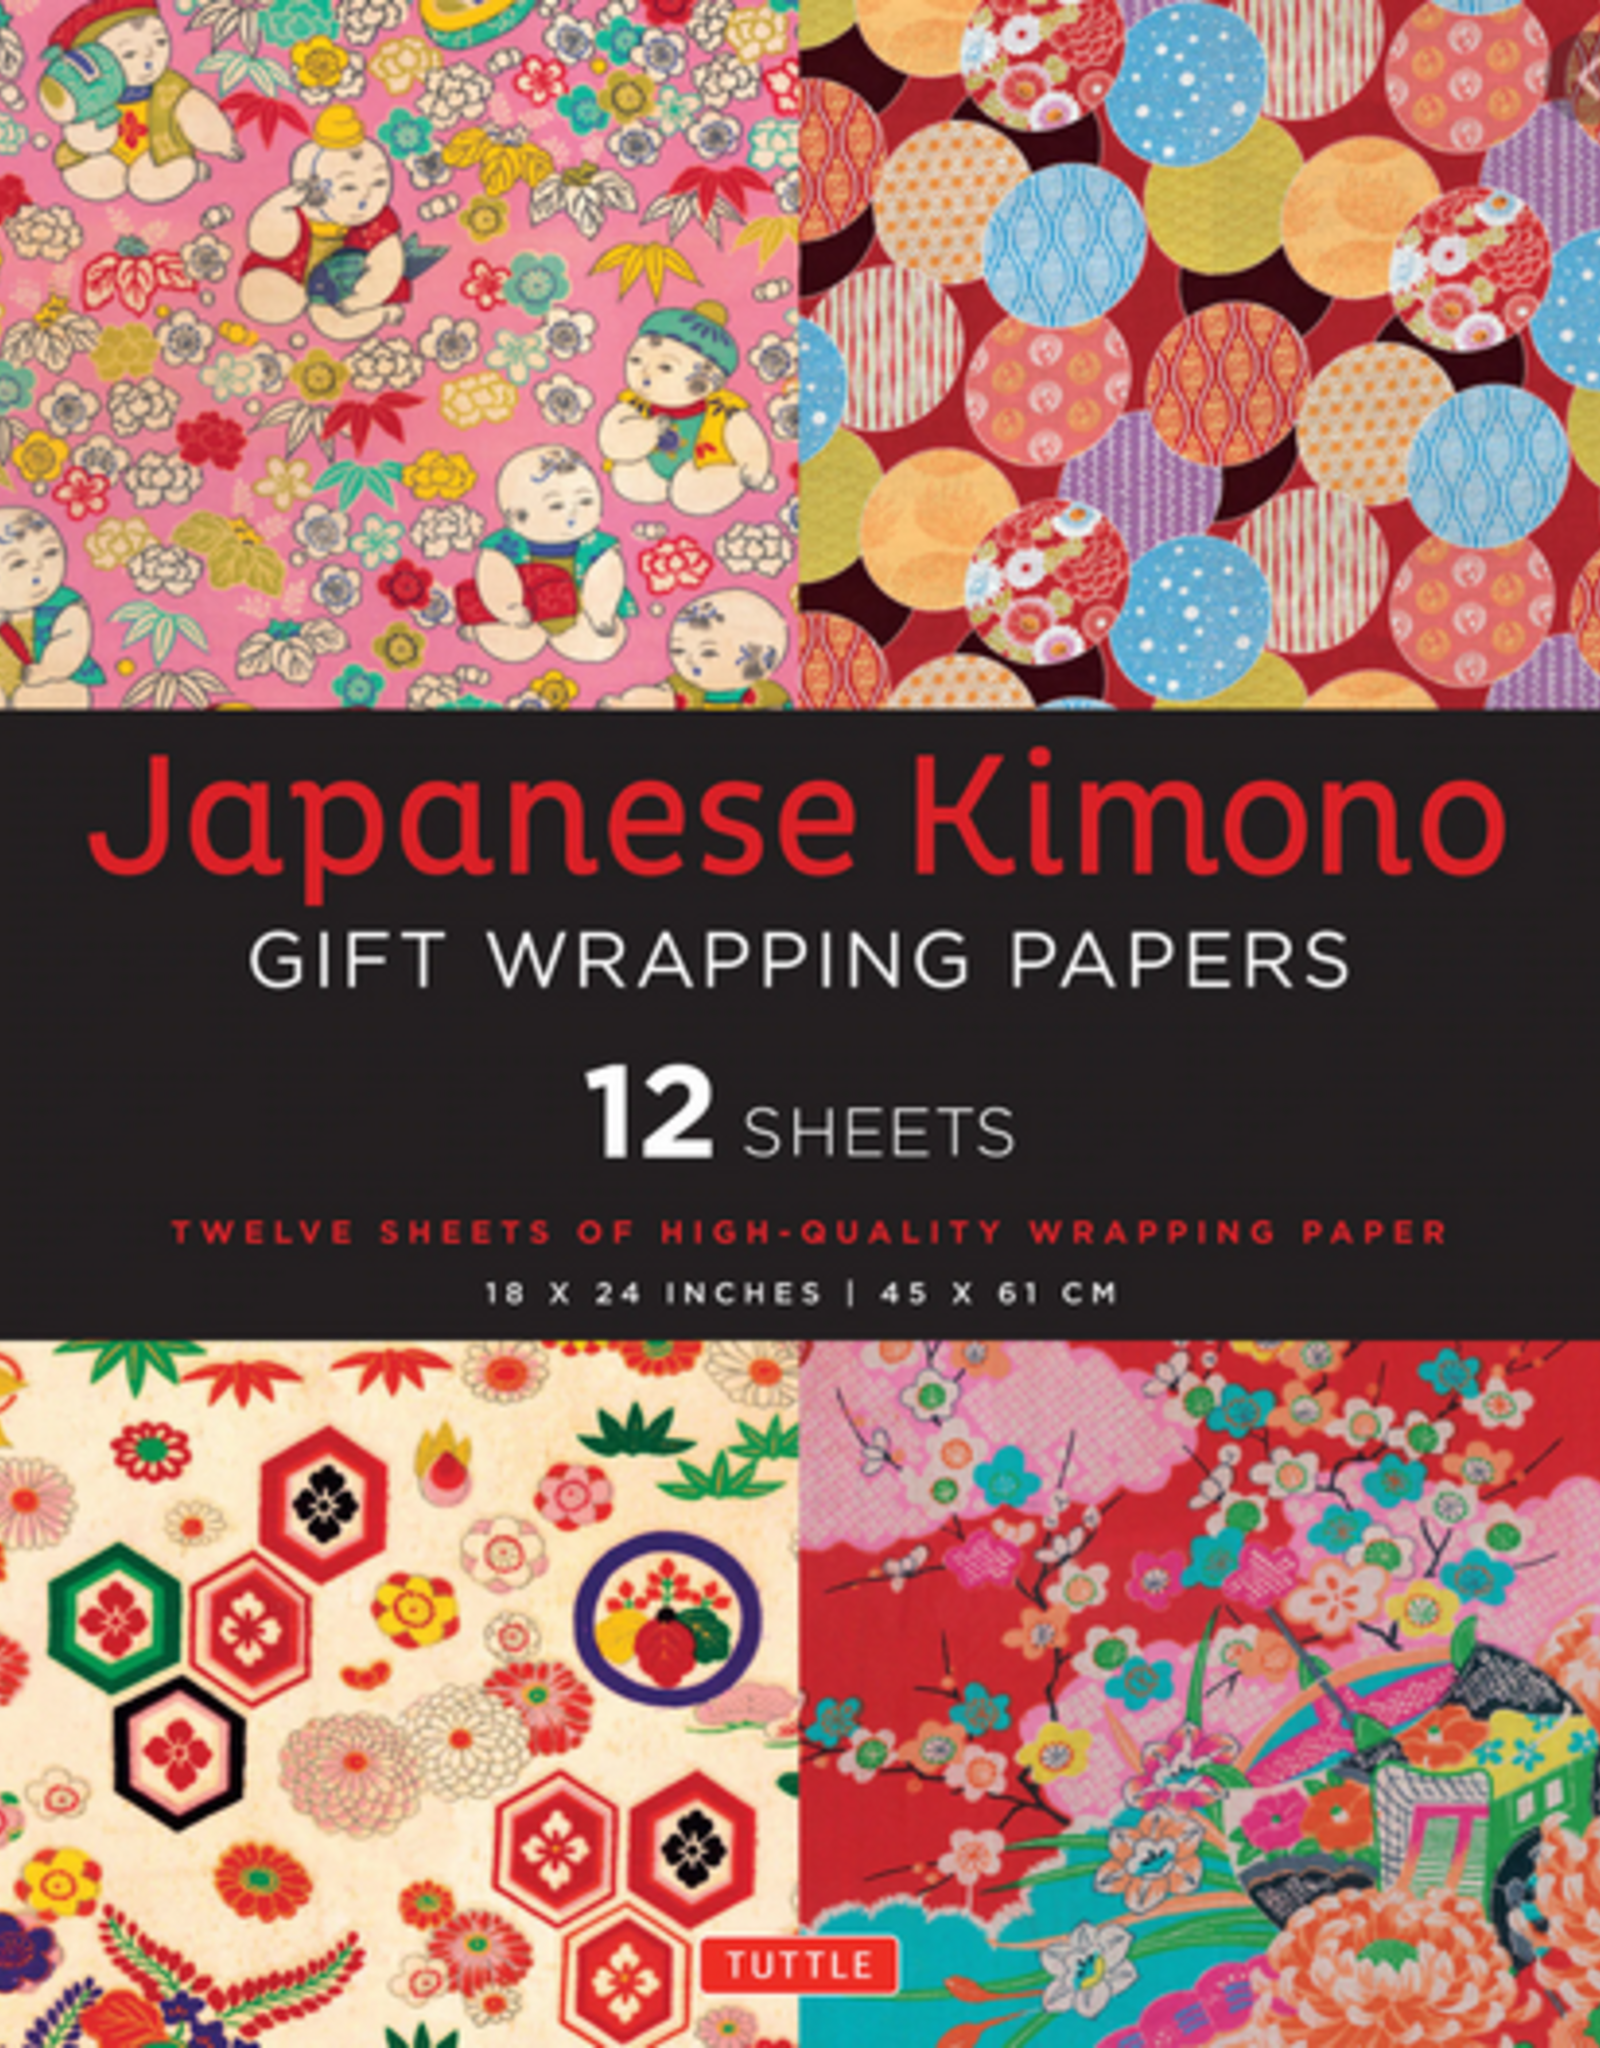 Japanese Kimono Gift Wrapping Papers, 12 Sheets